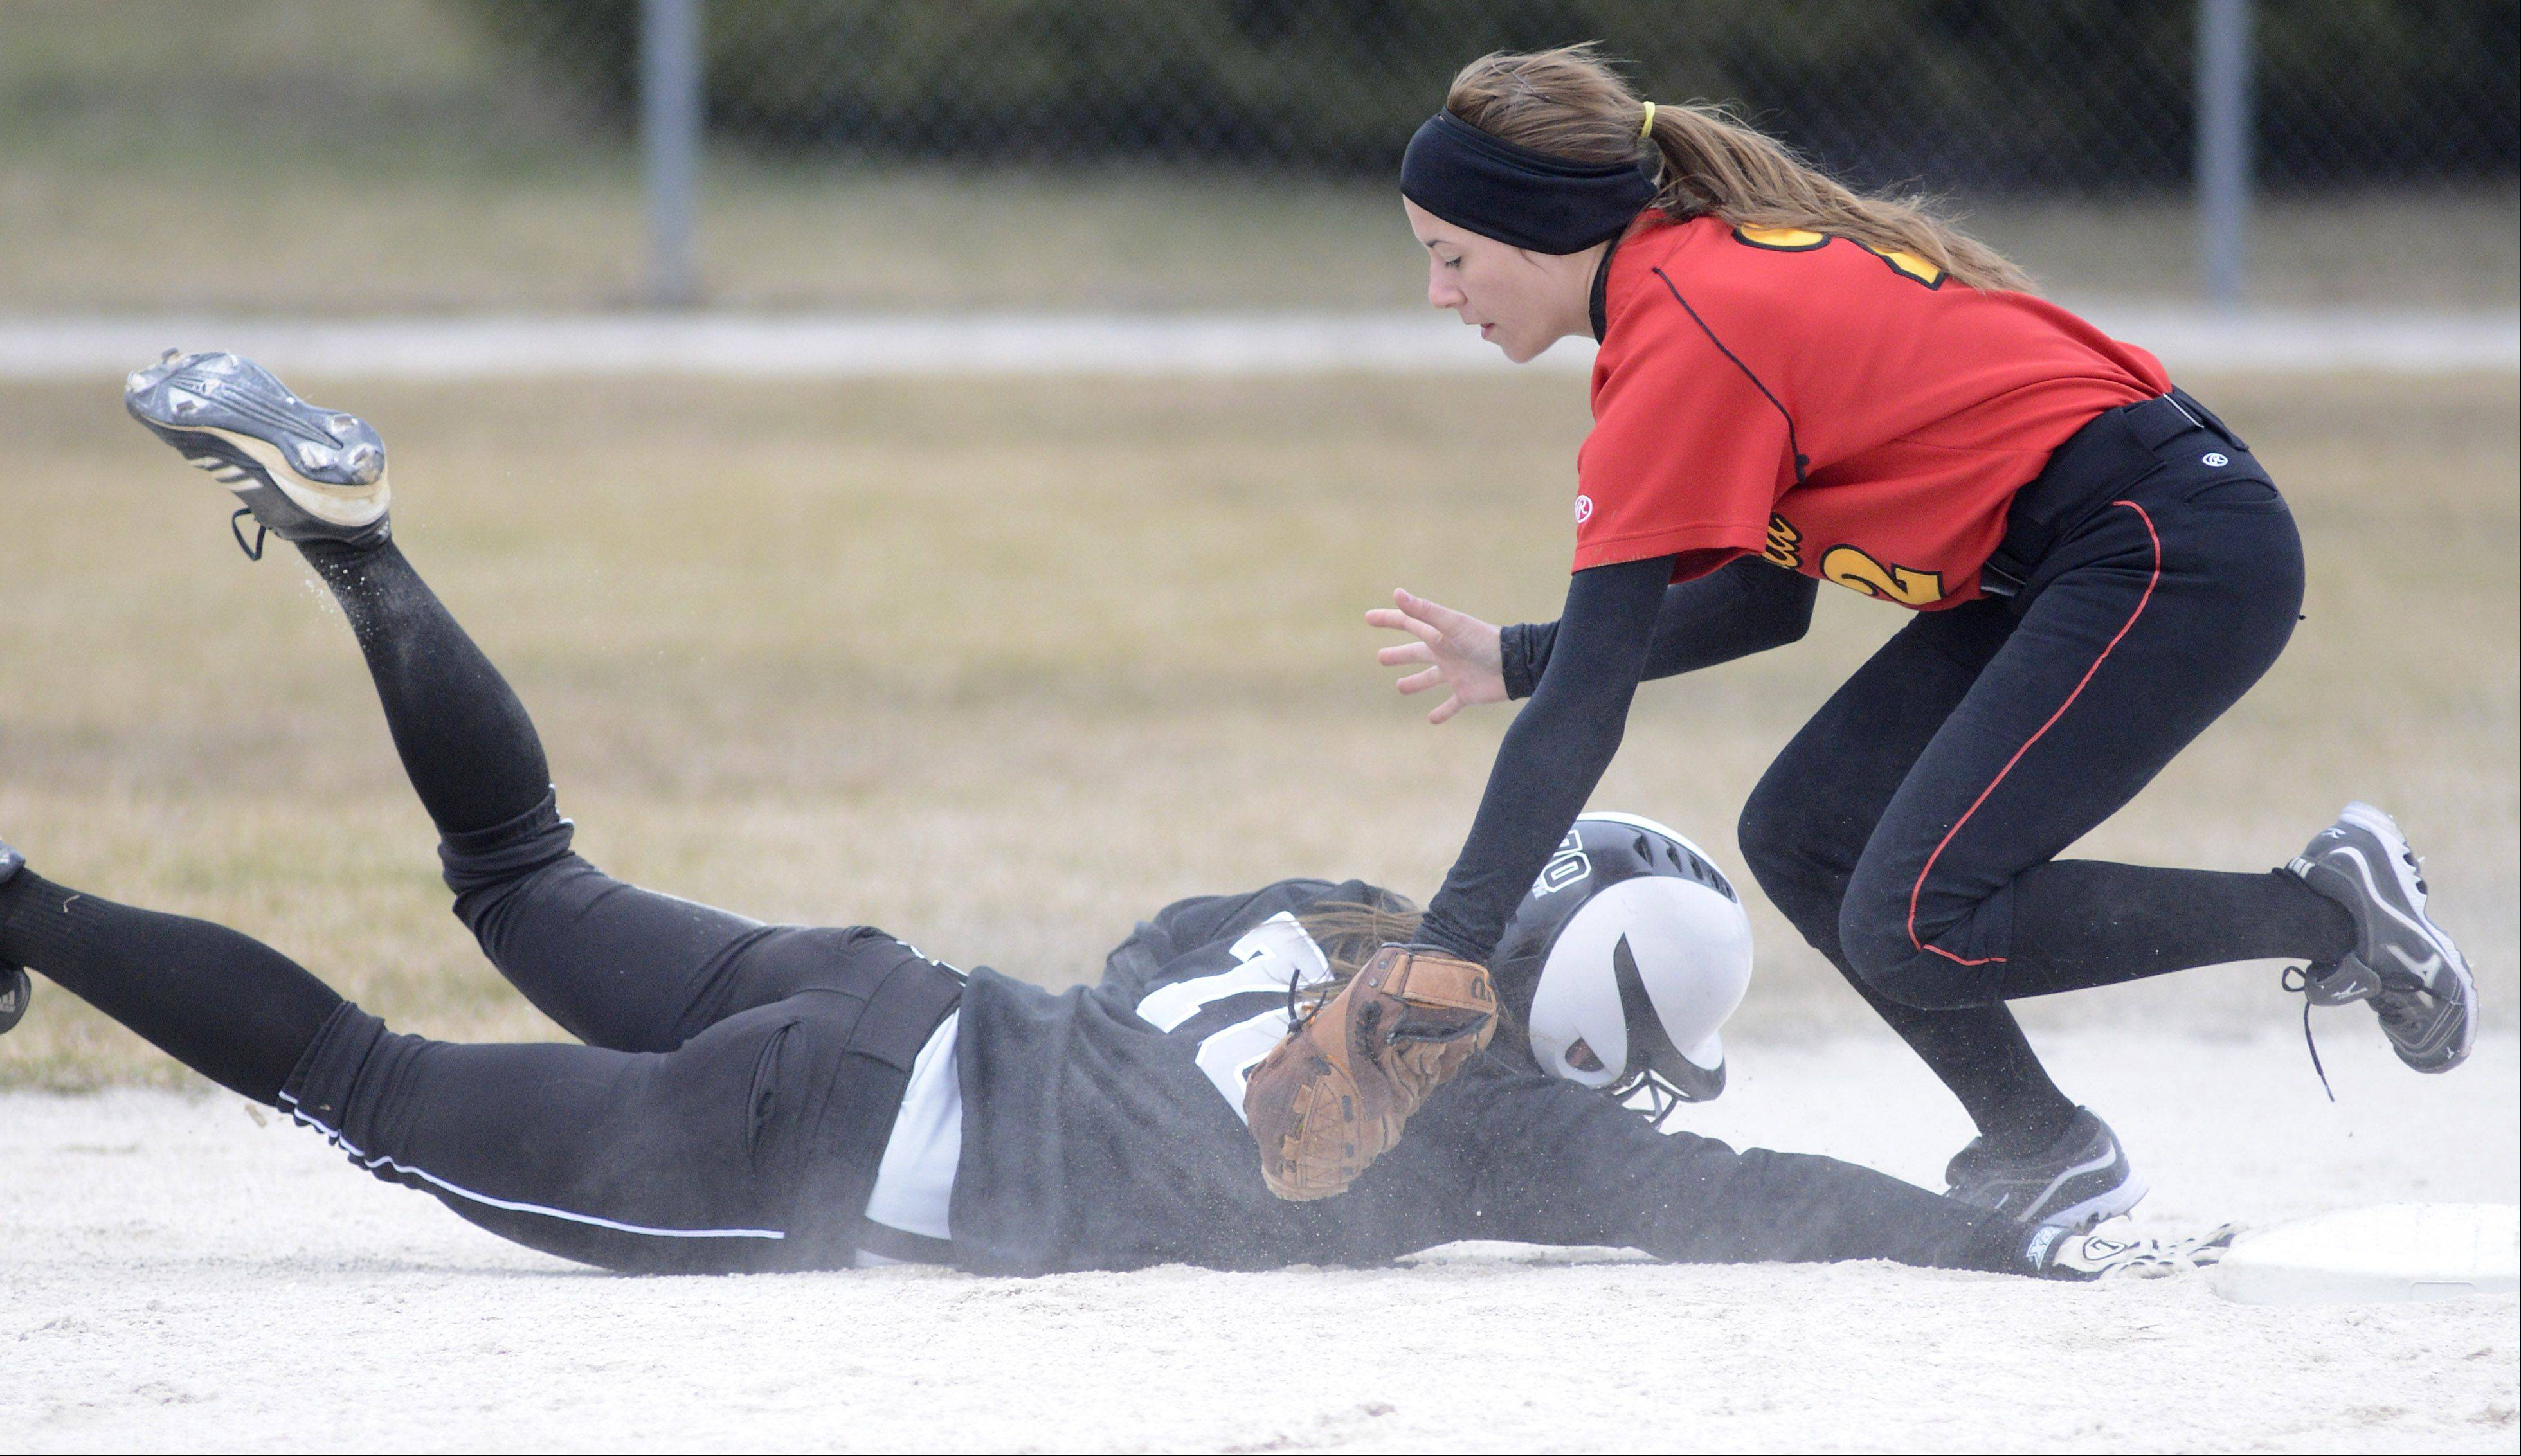 Kaneland's Lexi Roach is tagged out at second base by Batavia's Alex Scaccia in the first inning on Saturday, April 6.